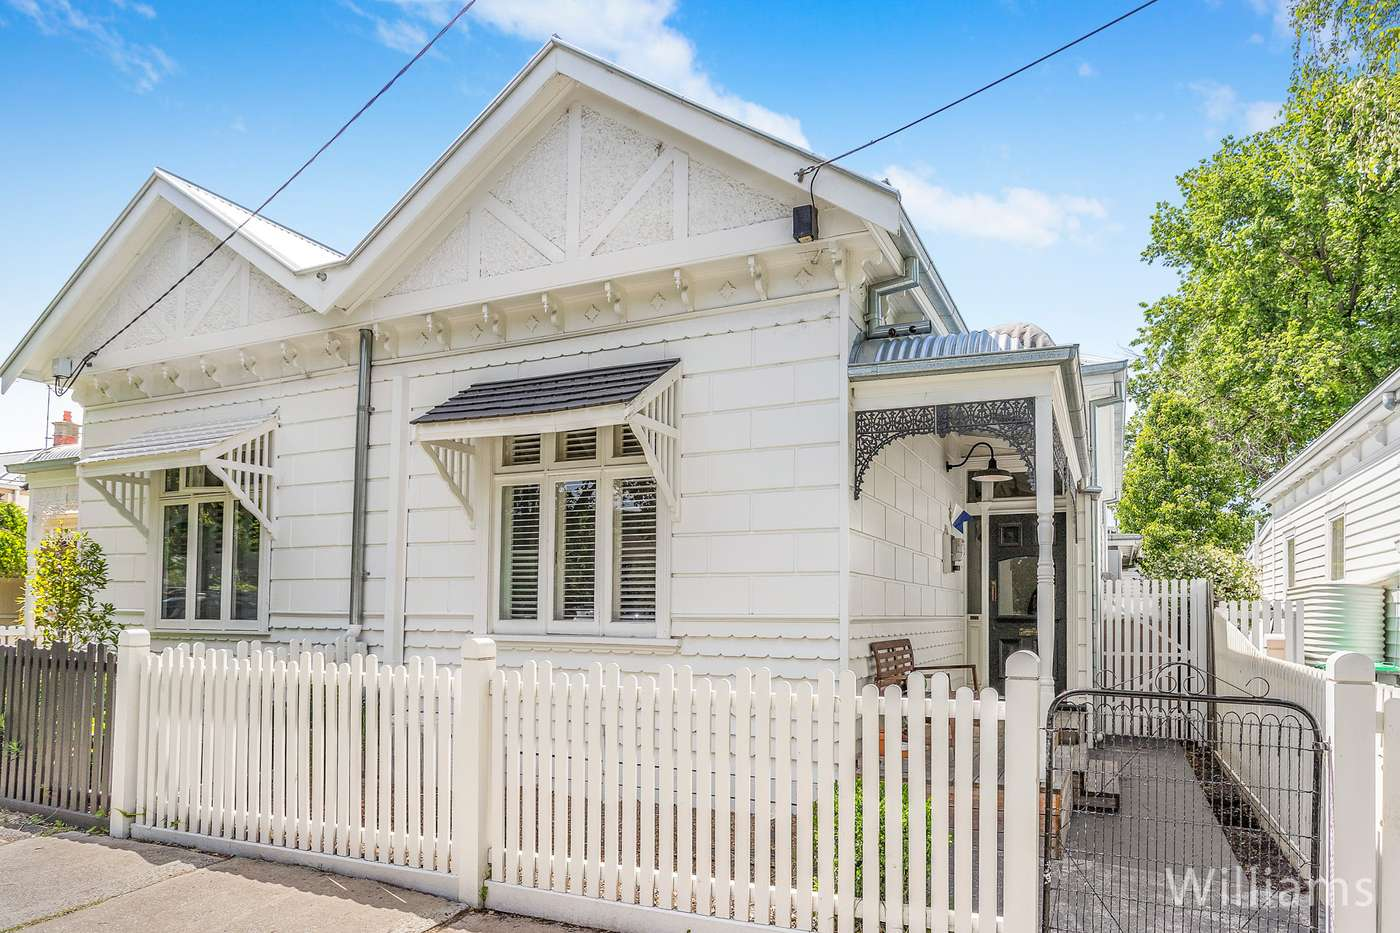 Main view of Homely house listing, 91 Pasco Street, Williamstown, VIC 3016